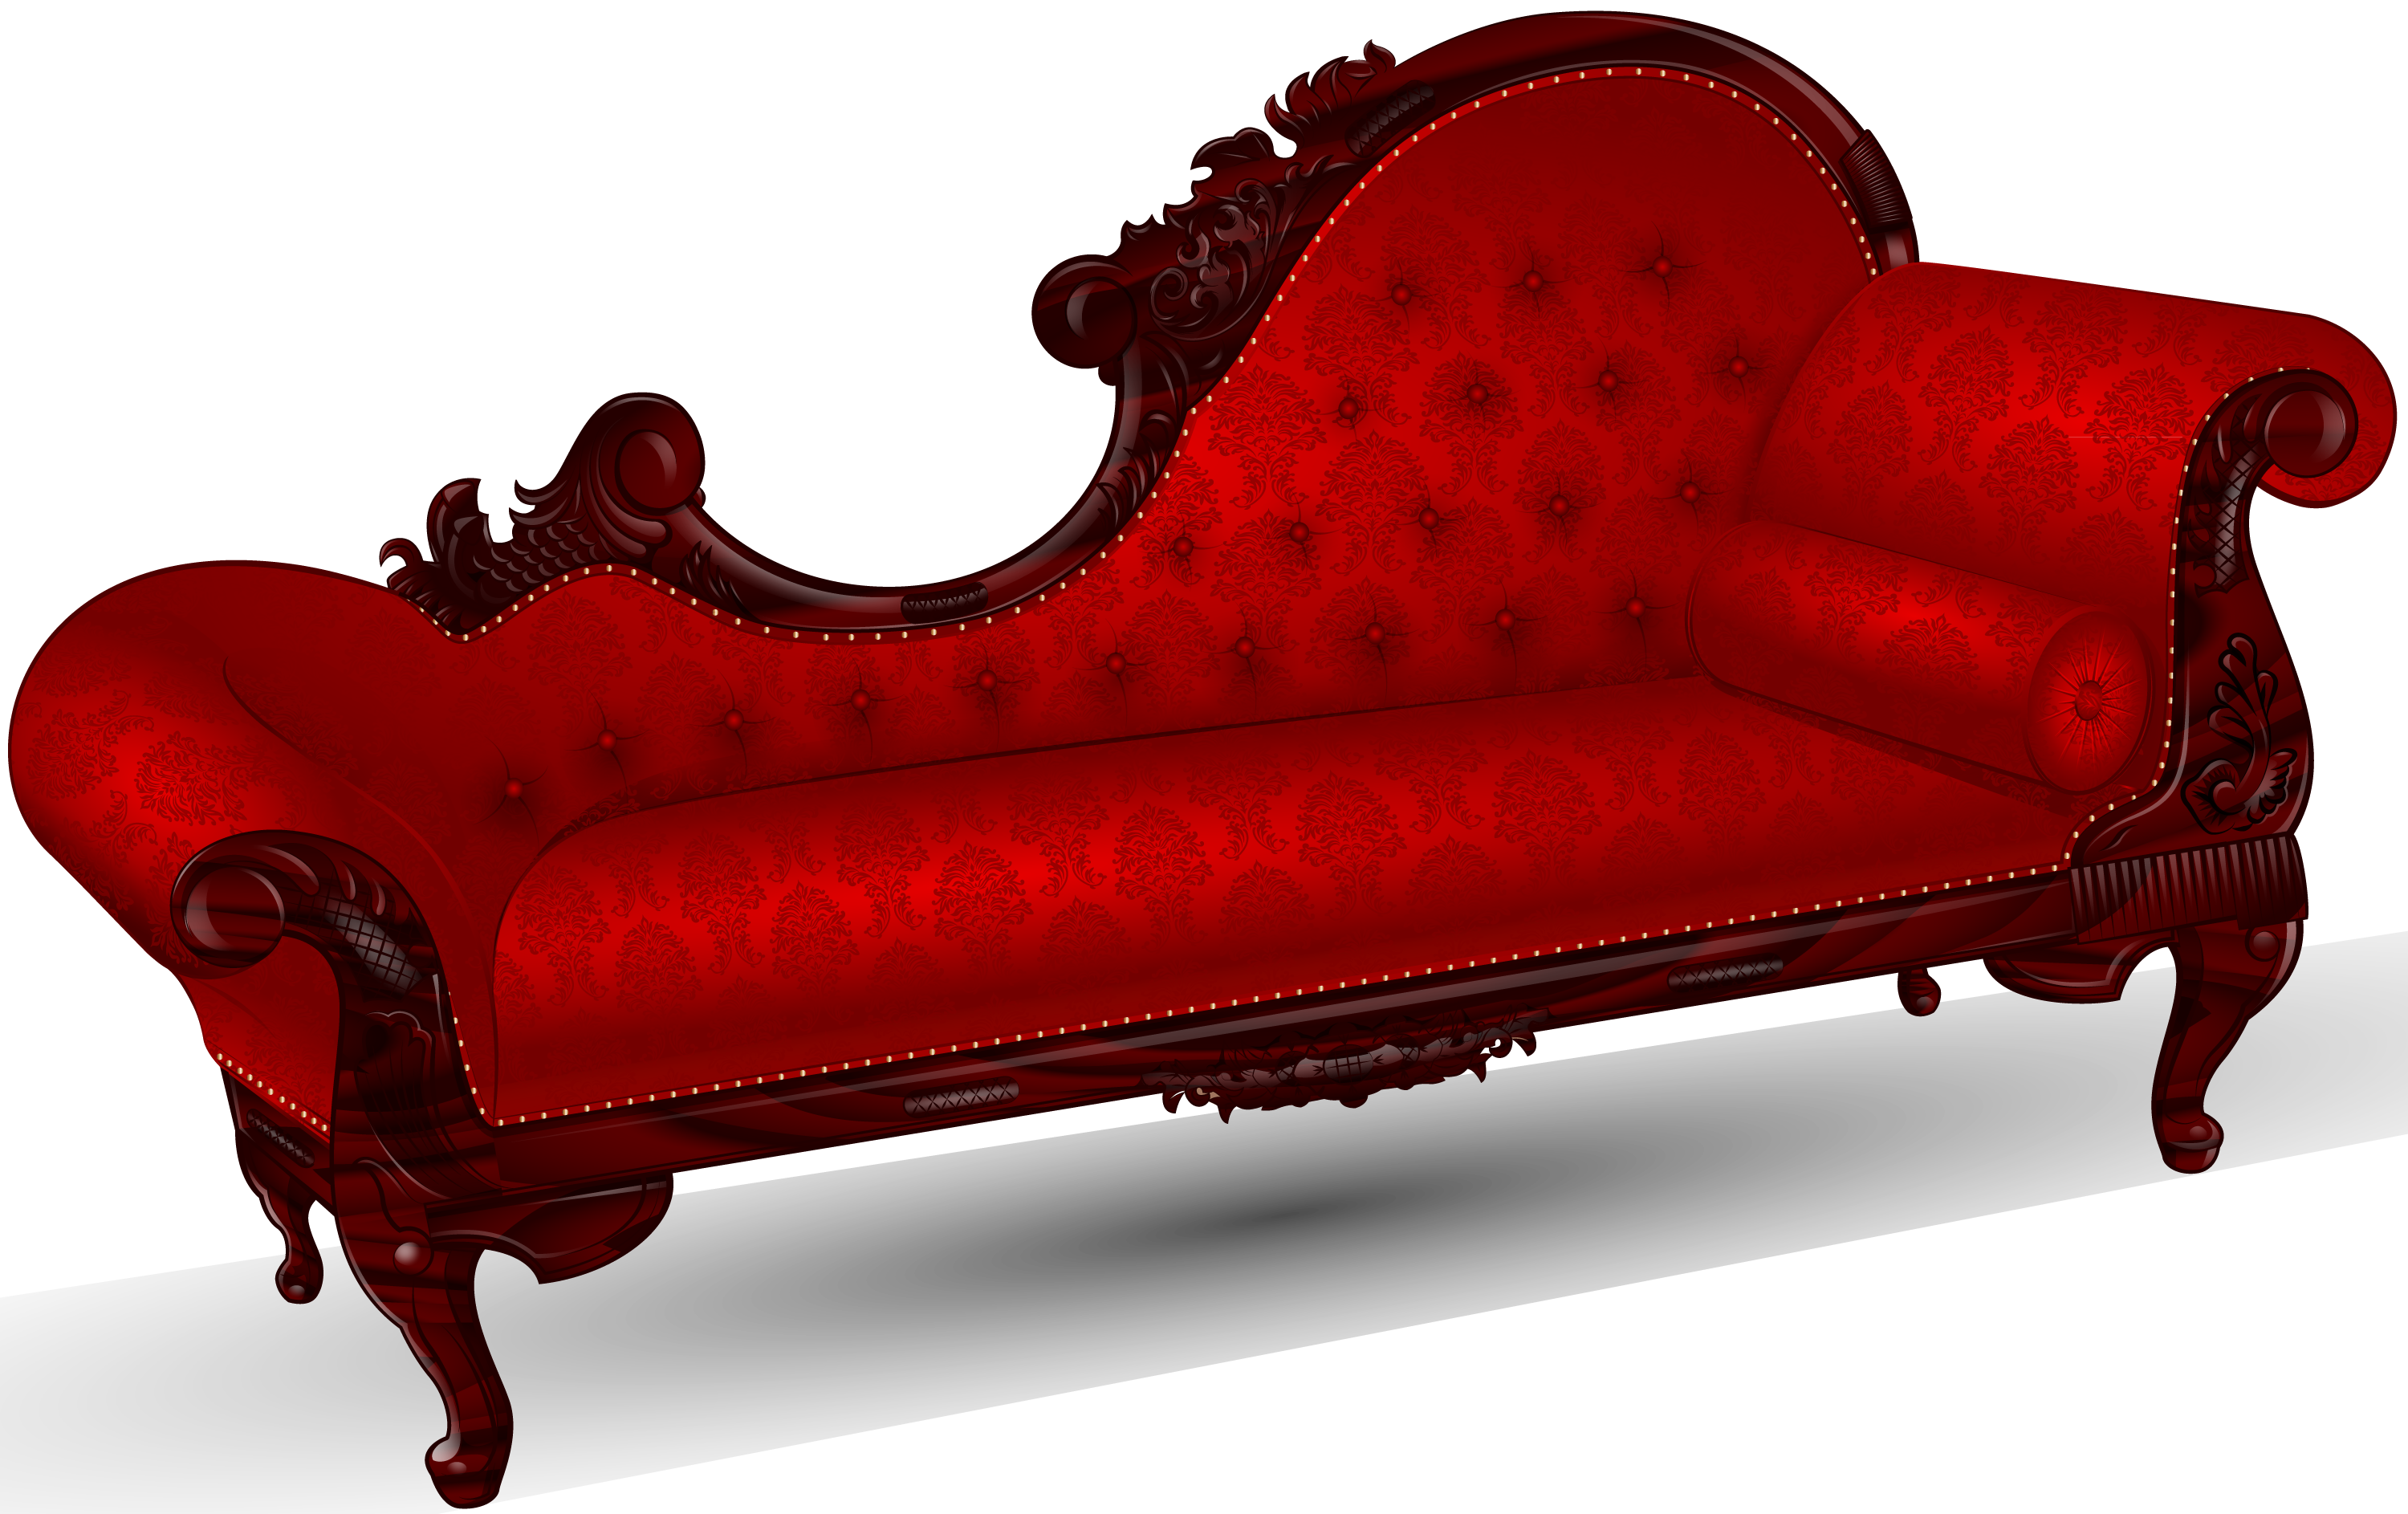 victorian fainting couch by sircle d2xlfbr 3000—1886